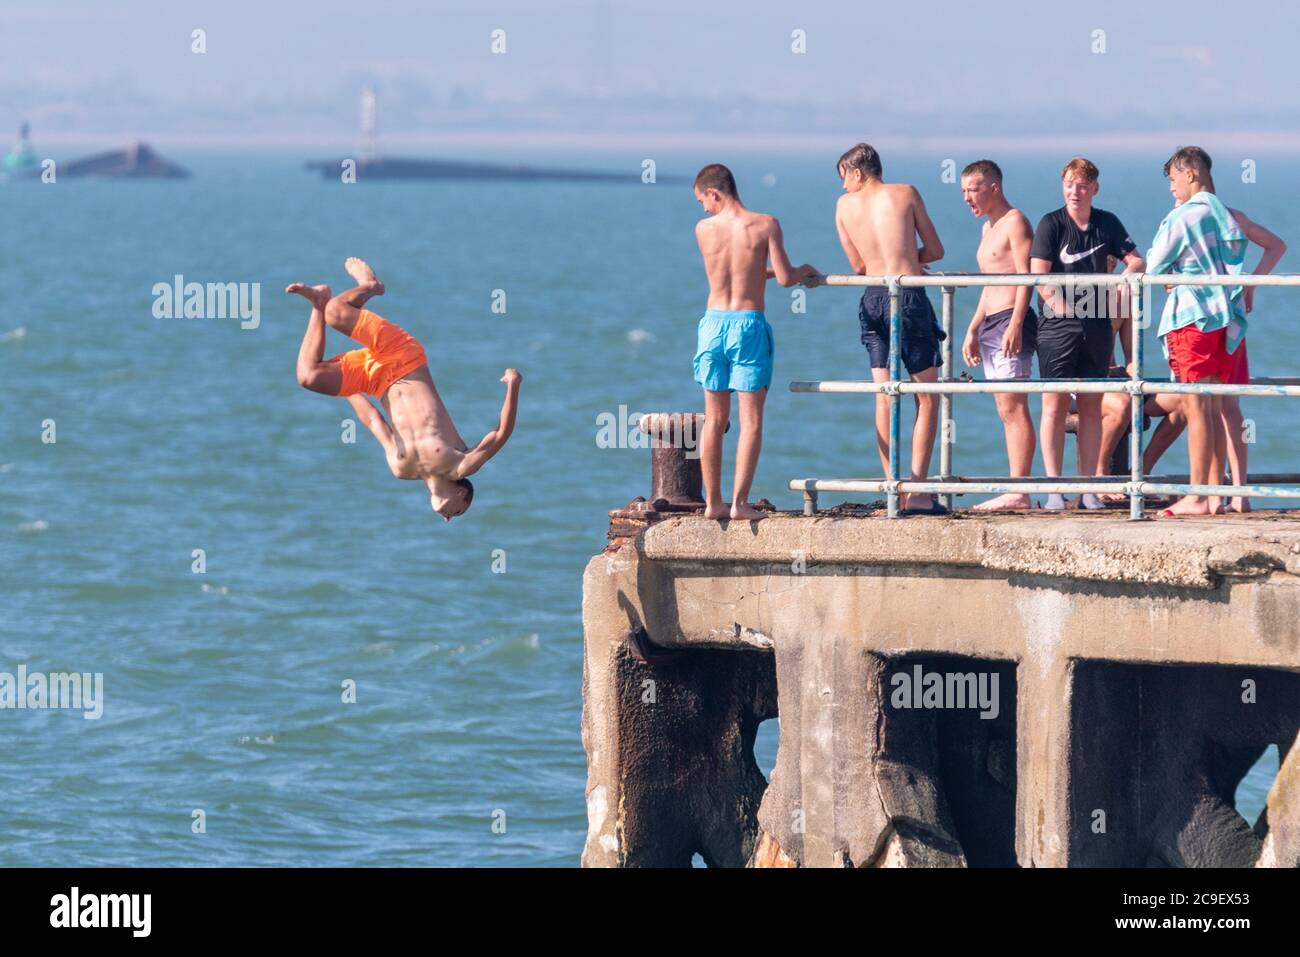 southend-on-sea-essex-uk-31st-jul-2020-with-the-forecast-high-temperatures-people-are-heading-to-the-seafront-to-cool-down-despite-the-covid-19-coronavirus-advice-in-the-thorpe-bay-area-to-the-east-of-southend-on-sea-people-are-out-enjoying-the-early-morning-high-tide-youngsters-are-jumping-into-the-sea-from-the-disused-barge-pier-off-gunners-park-2C9EX53.jpg